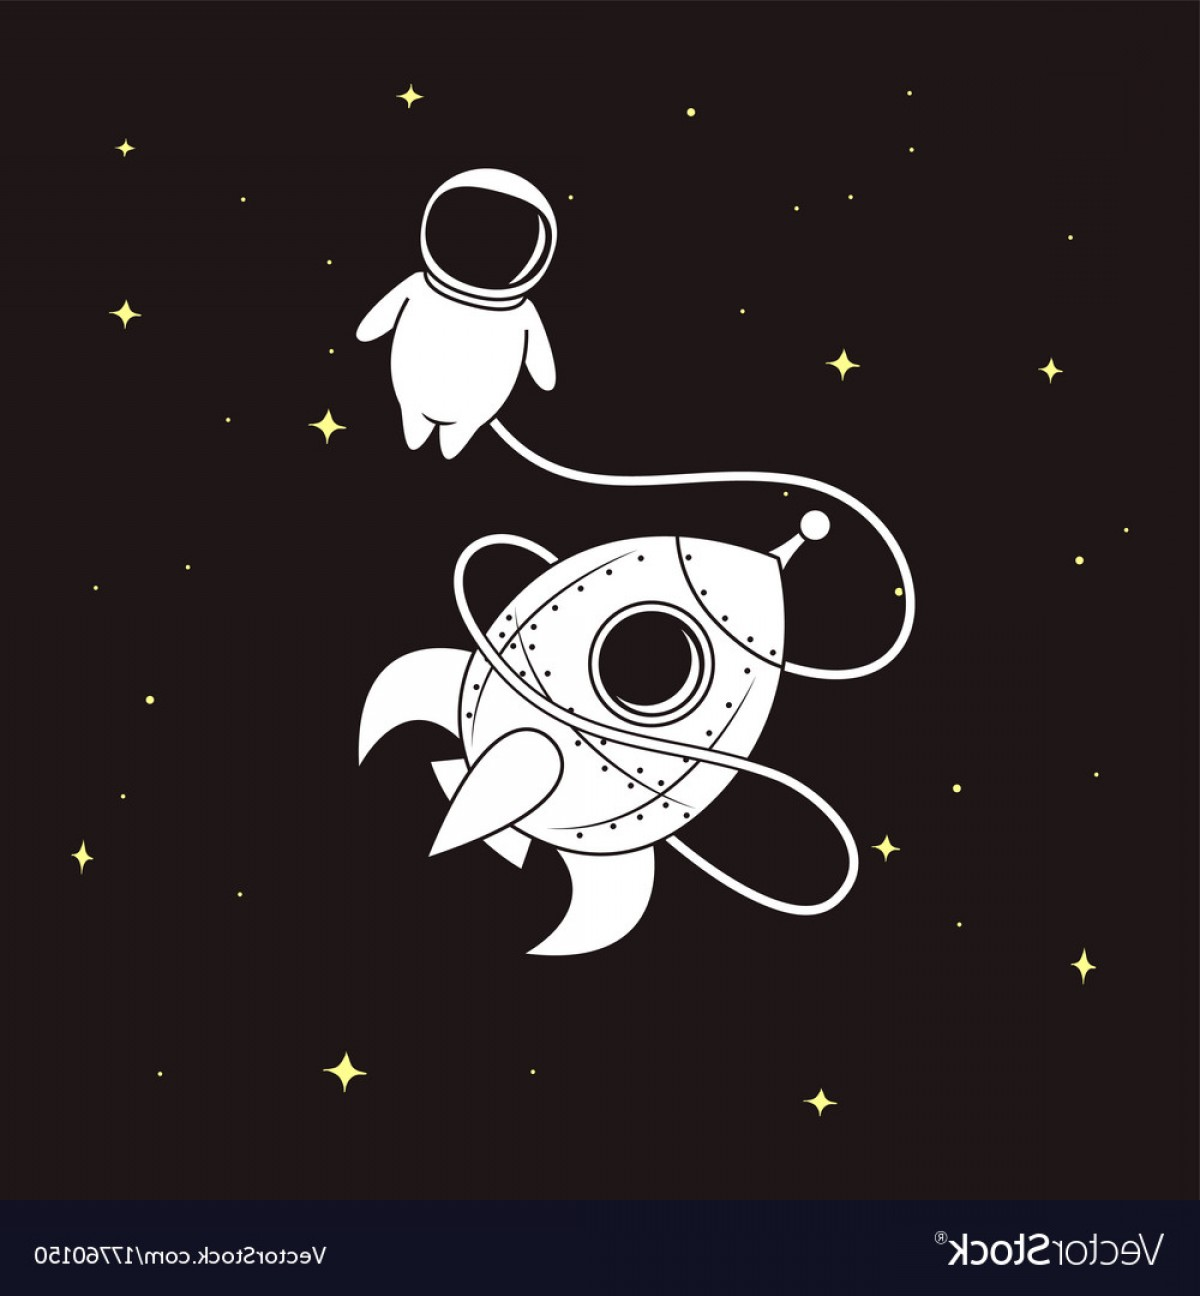 Space Vector Graphics: Little Astronaut With Rocket In Space Vector